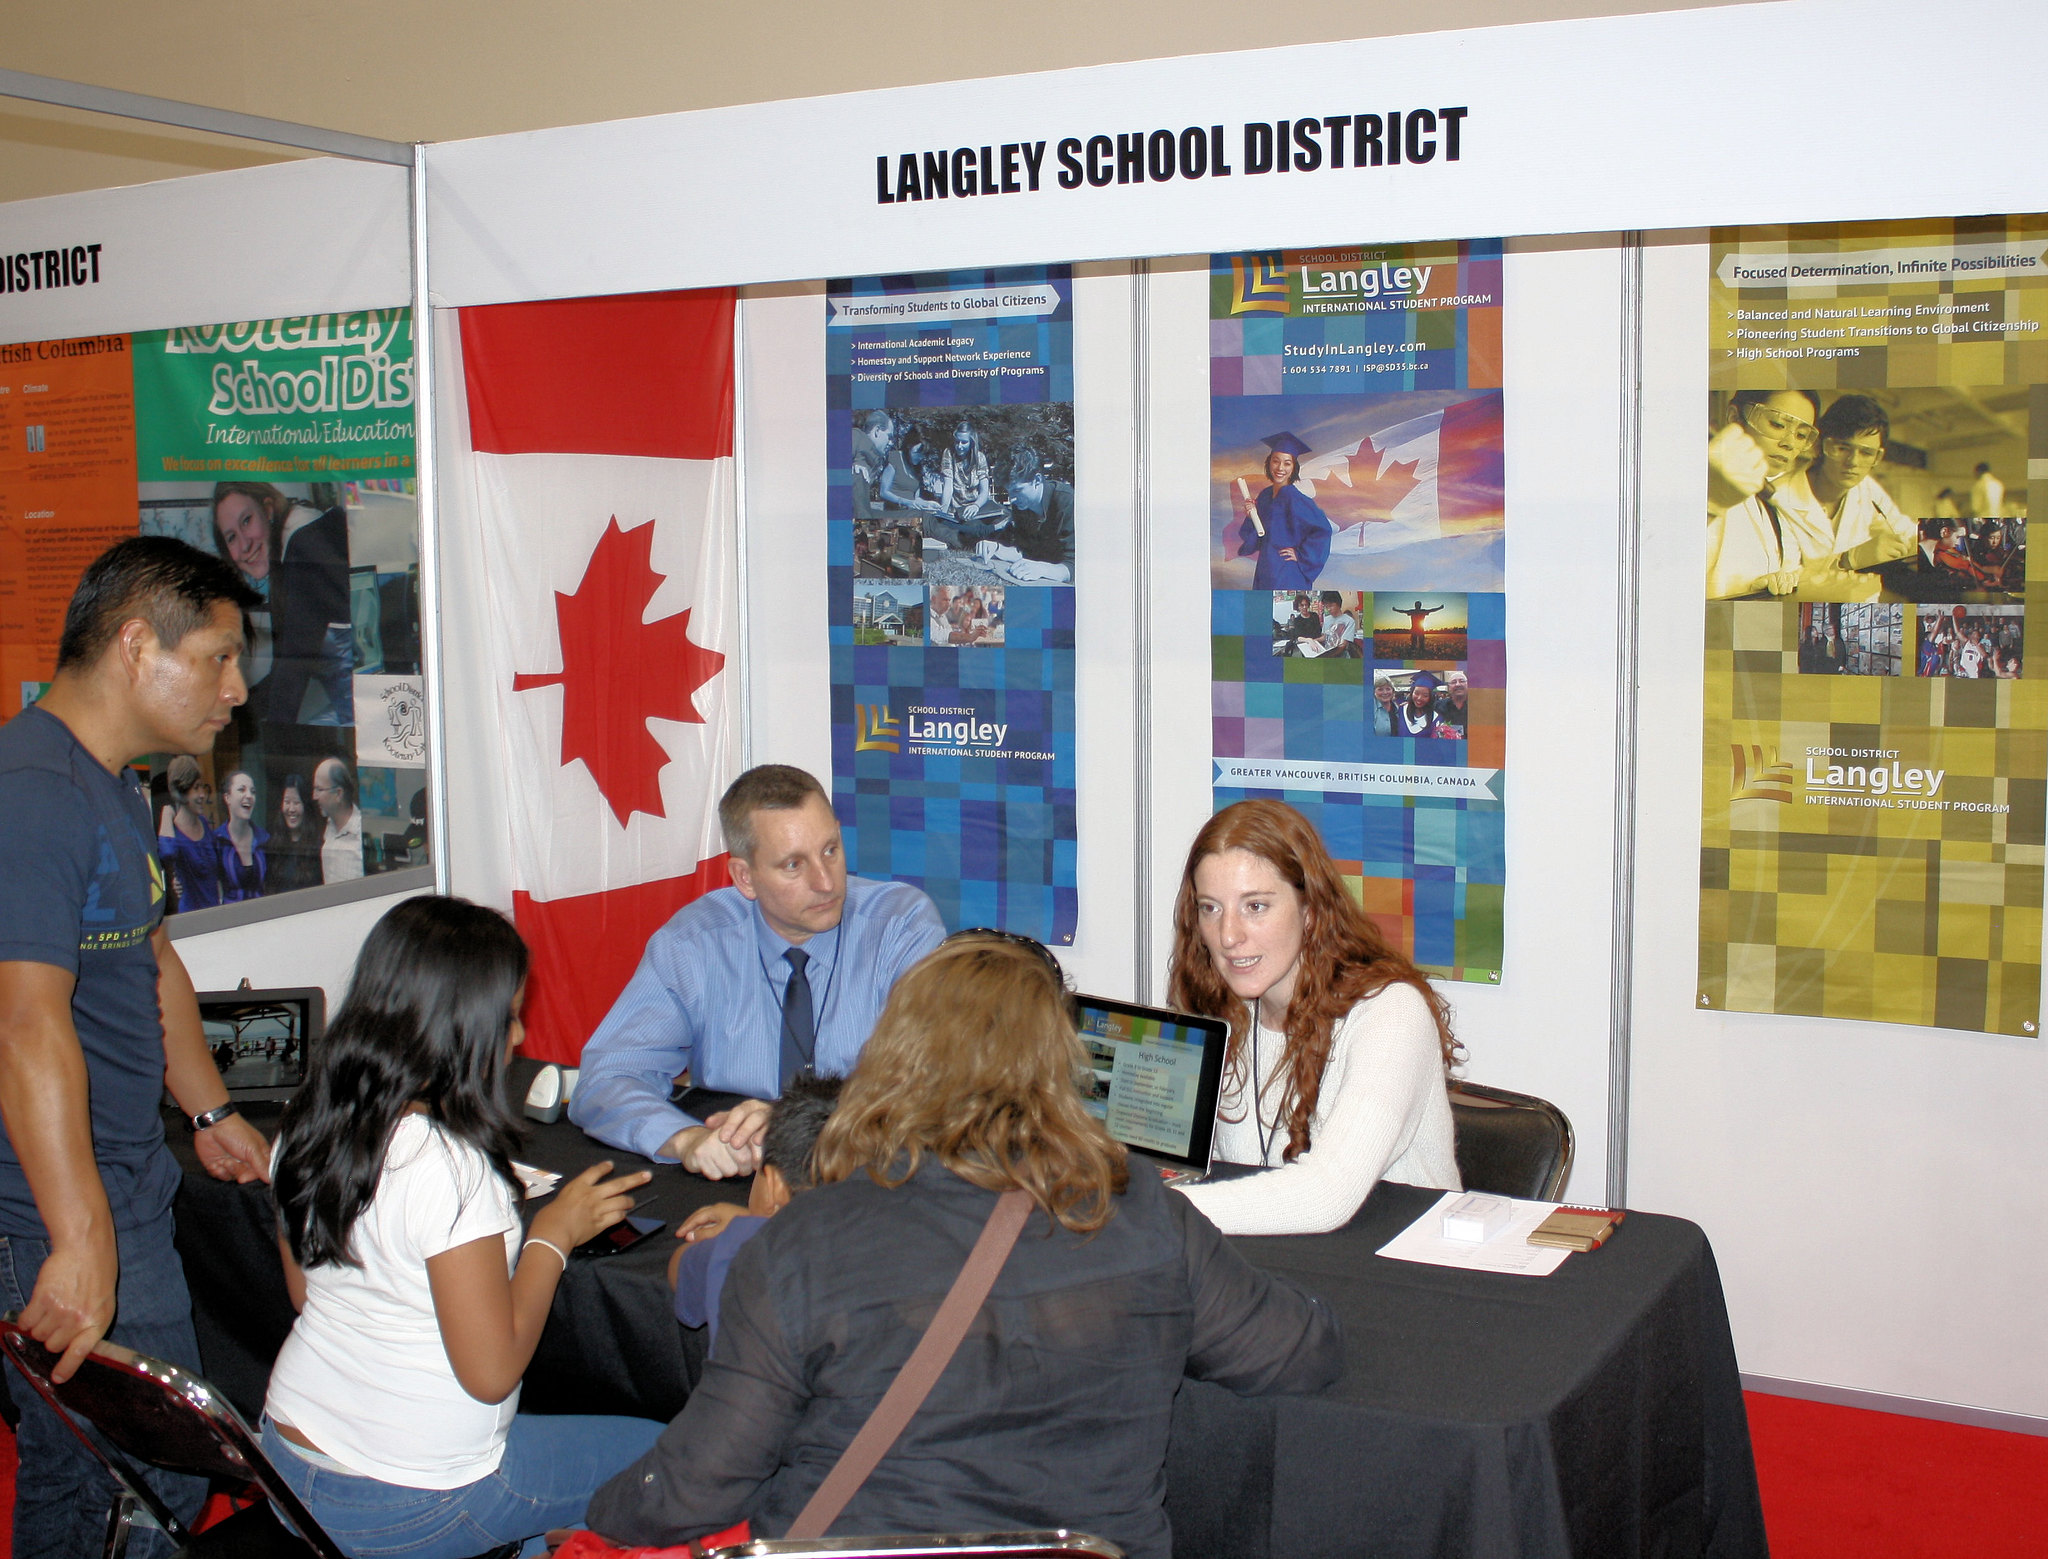 Langley School District: Study In Langley